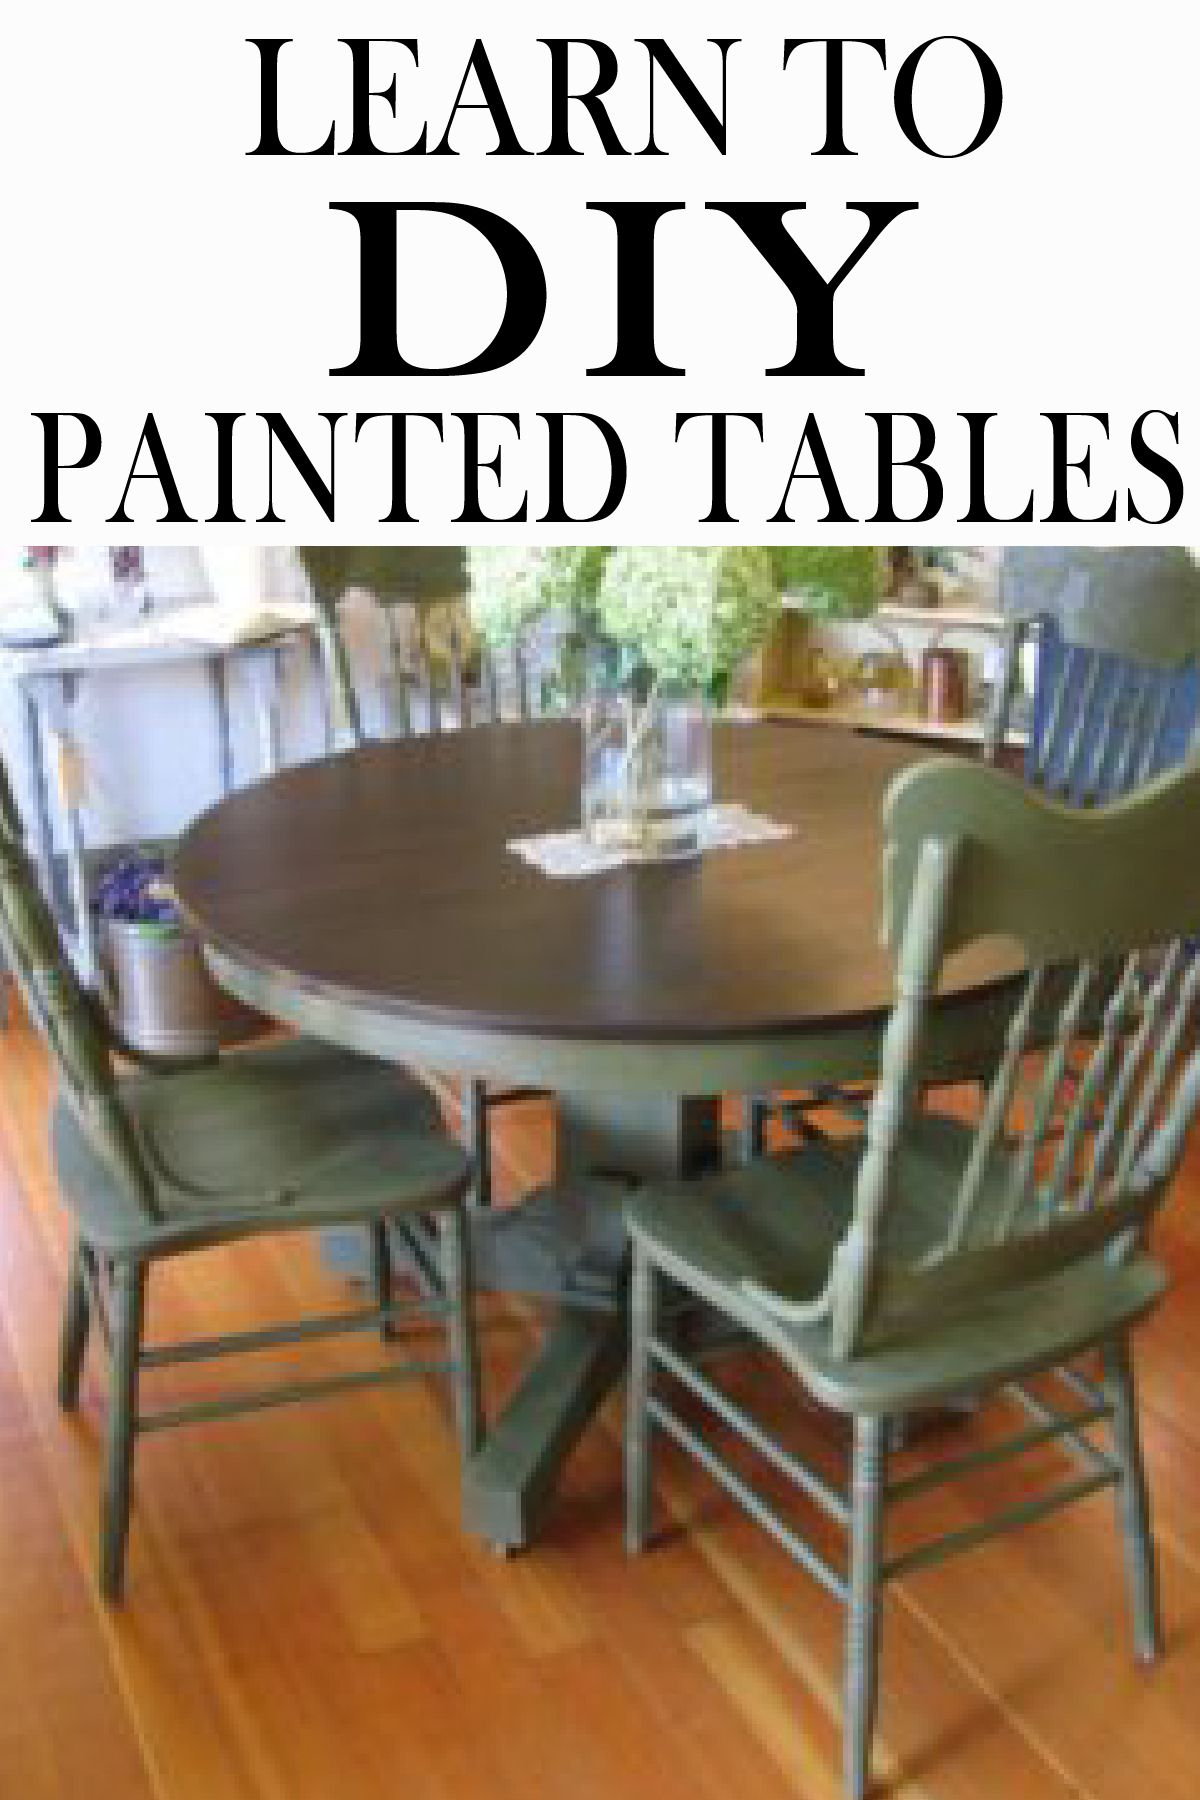 7 Common Mistakes Made Painting Kitchen Tables Painted Furniture Ideas Painted Kitchen Tables Refinishing Kitchen Tables Kitchen Table Wood